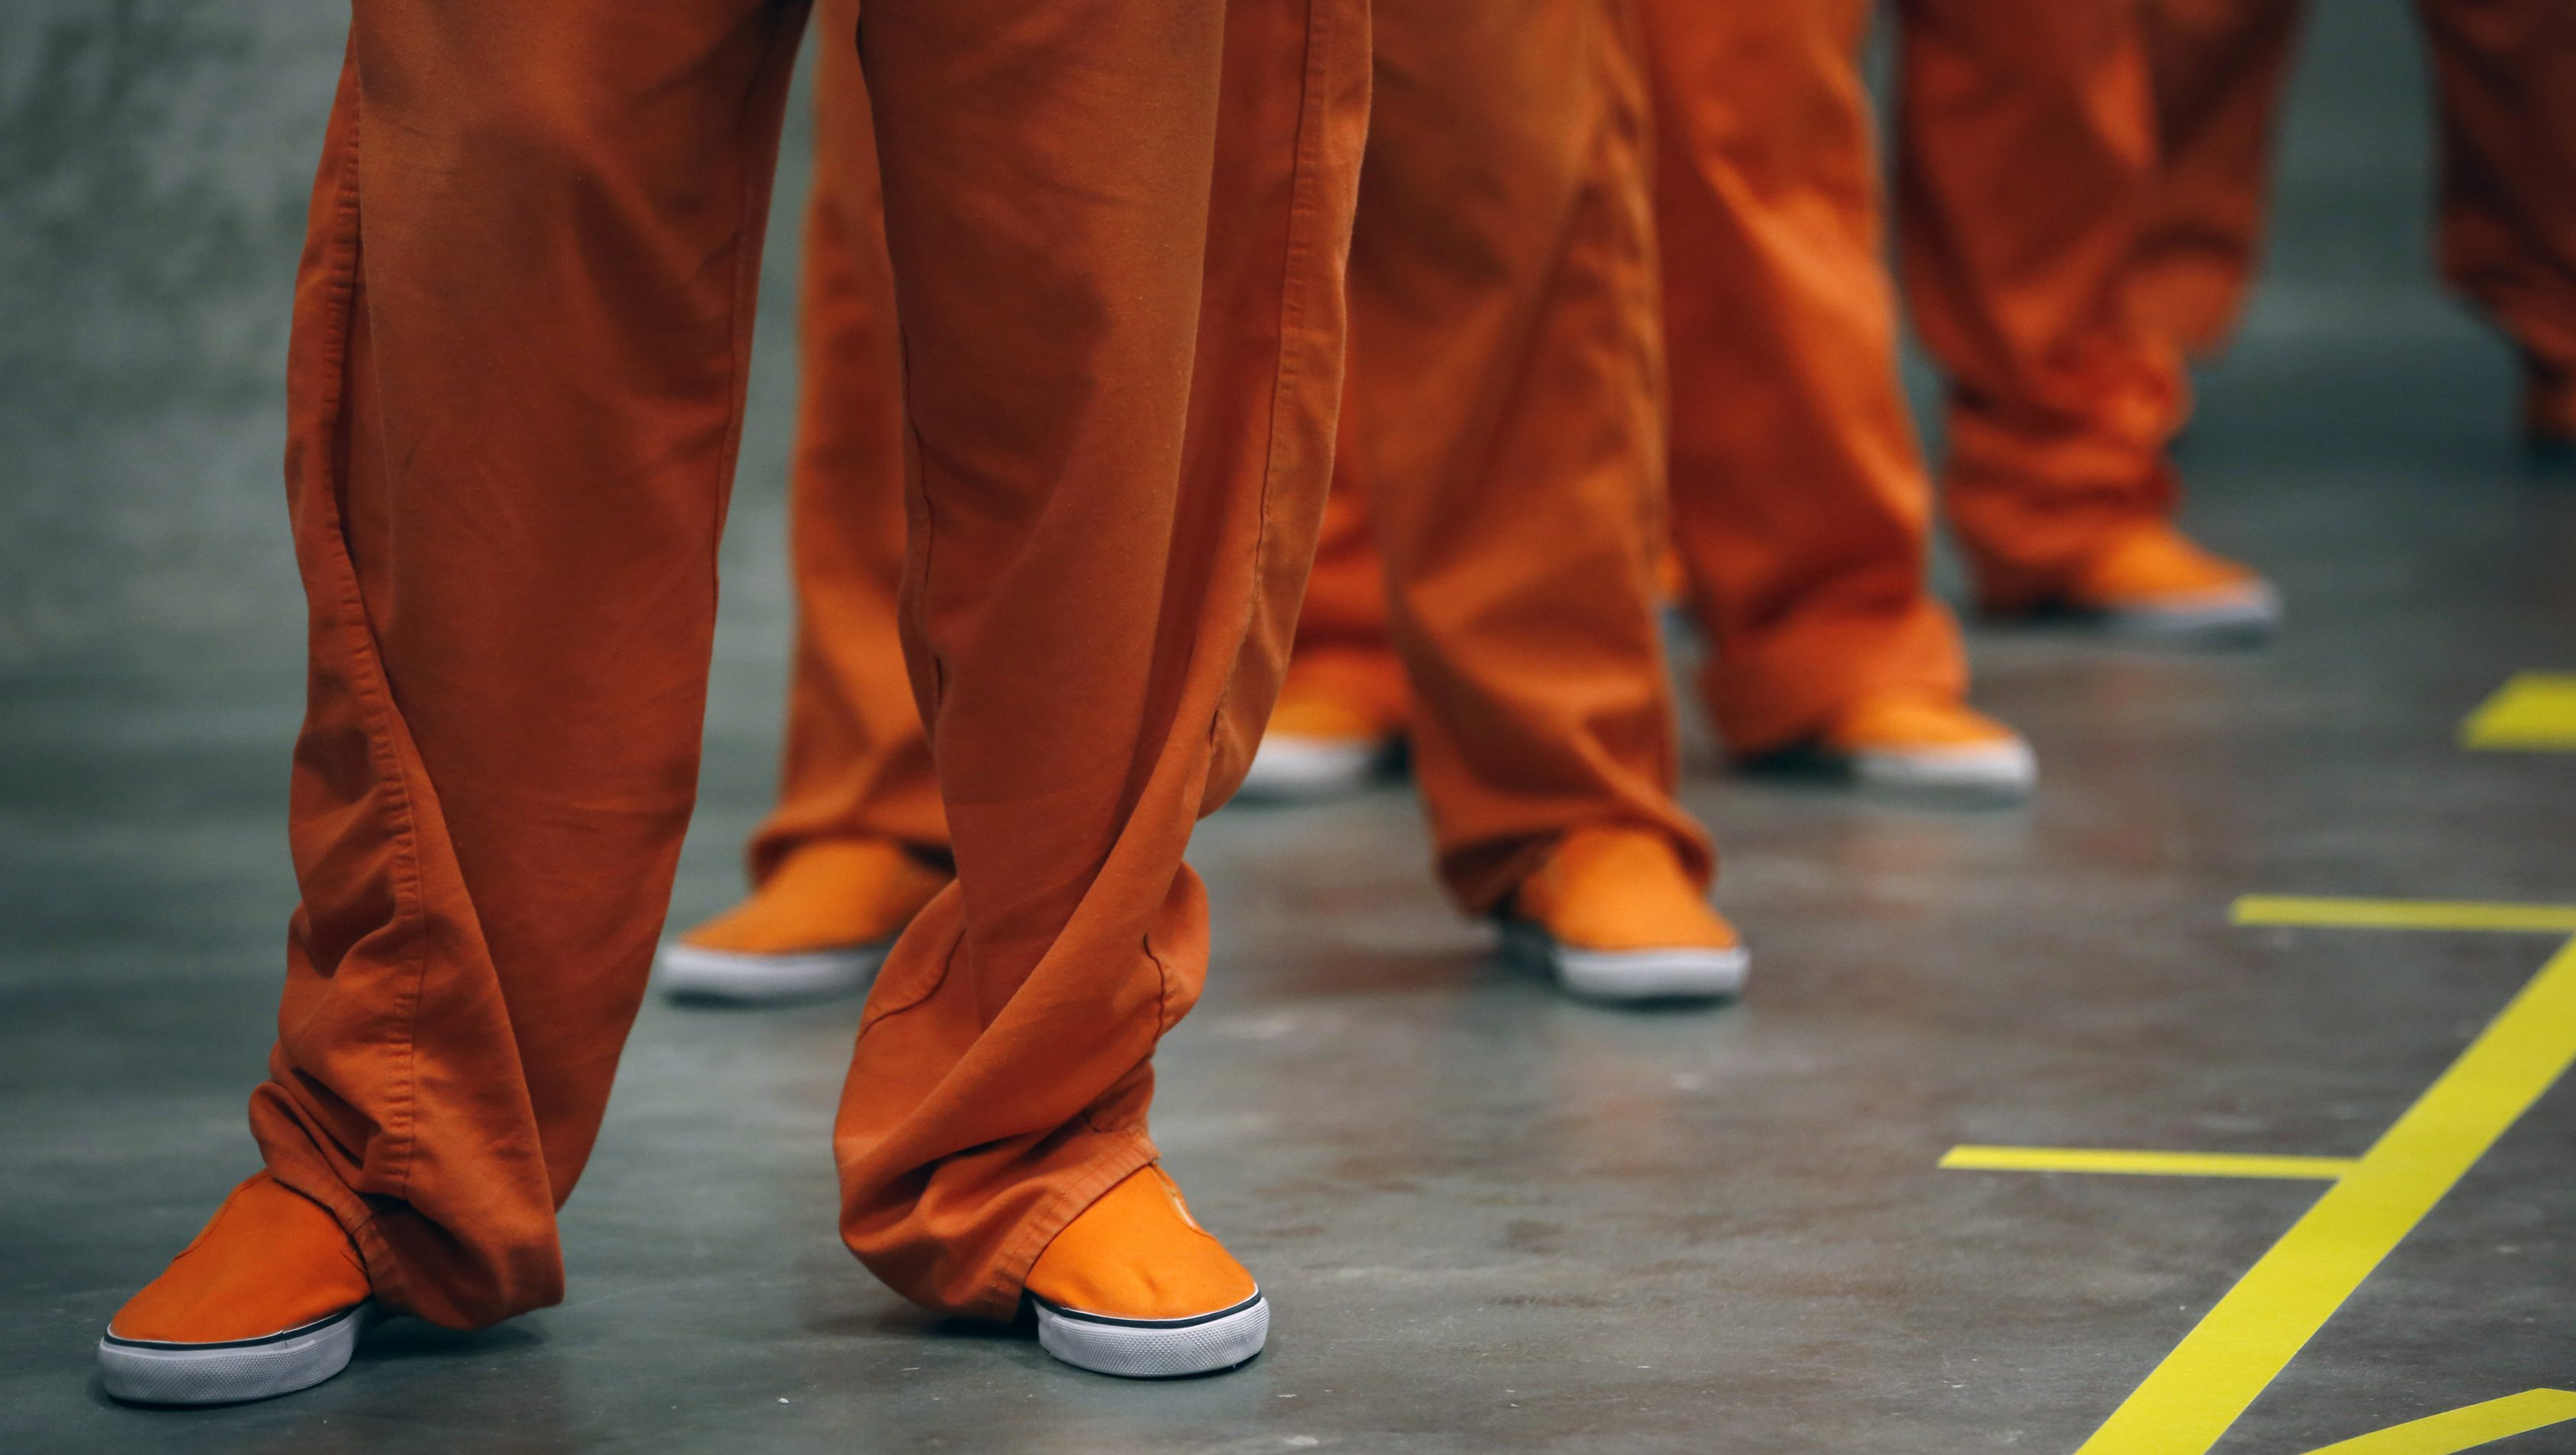 Prison inmates stand in line as they prepare to dance in opposition of violence against women as they participate in a One Billion Rising event at the San Francisco County Jail #5 on Valentine's Day in San Bruno, California February 14, 2013. The event, with participants from 250 countries performing a choreographed dance routine on a day associated with romantic love, aims to raise awareness about violence against women in which one in three women across the globe will be raped or beaten in their lifetime. REUTERS/Stephen Lam (UNITED STATES - Tags: SOCIETY) - RTR3DT6Q